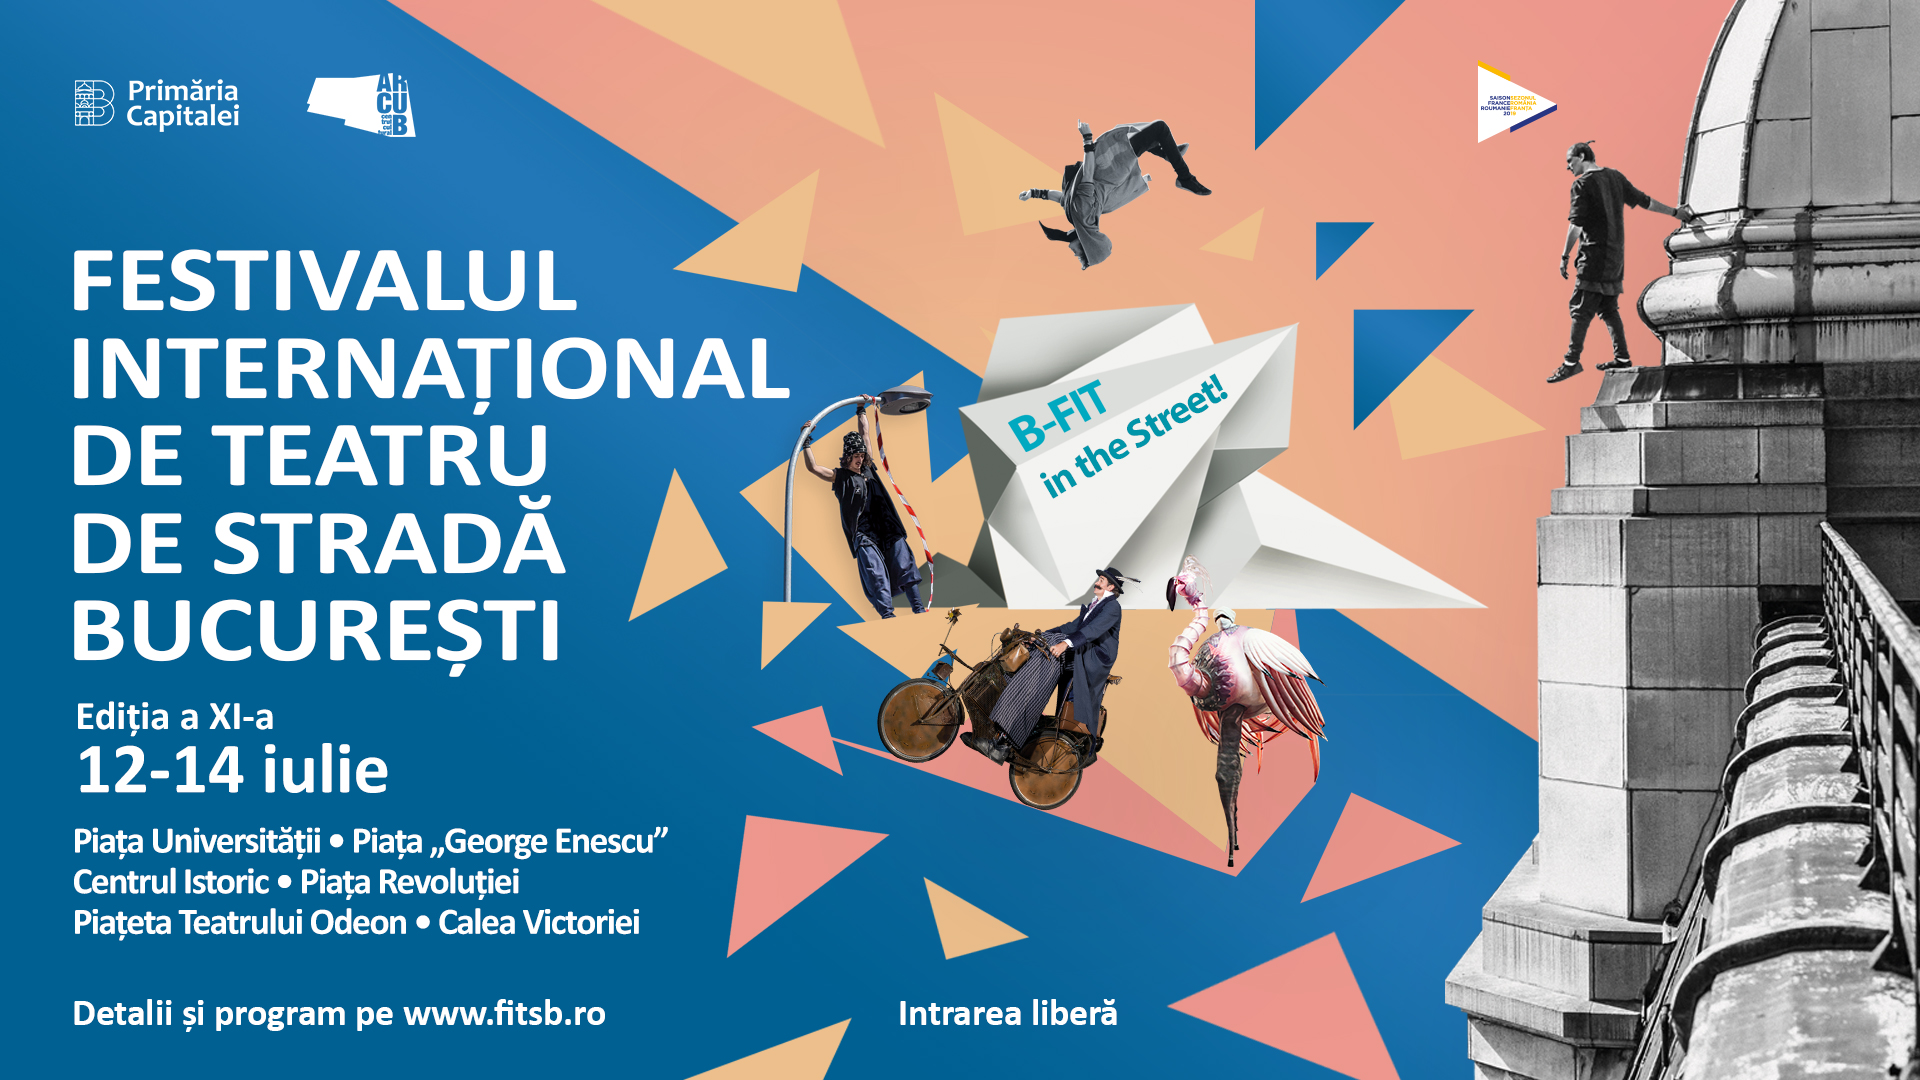 festivalul international de teatru de strada